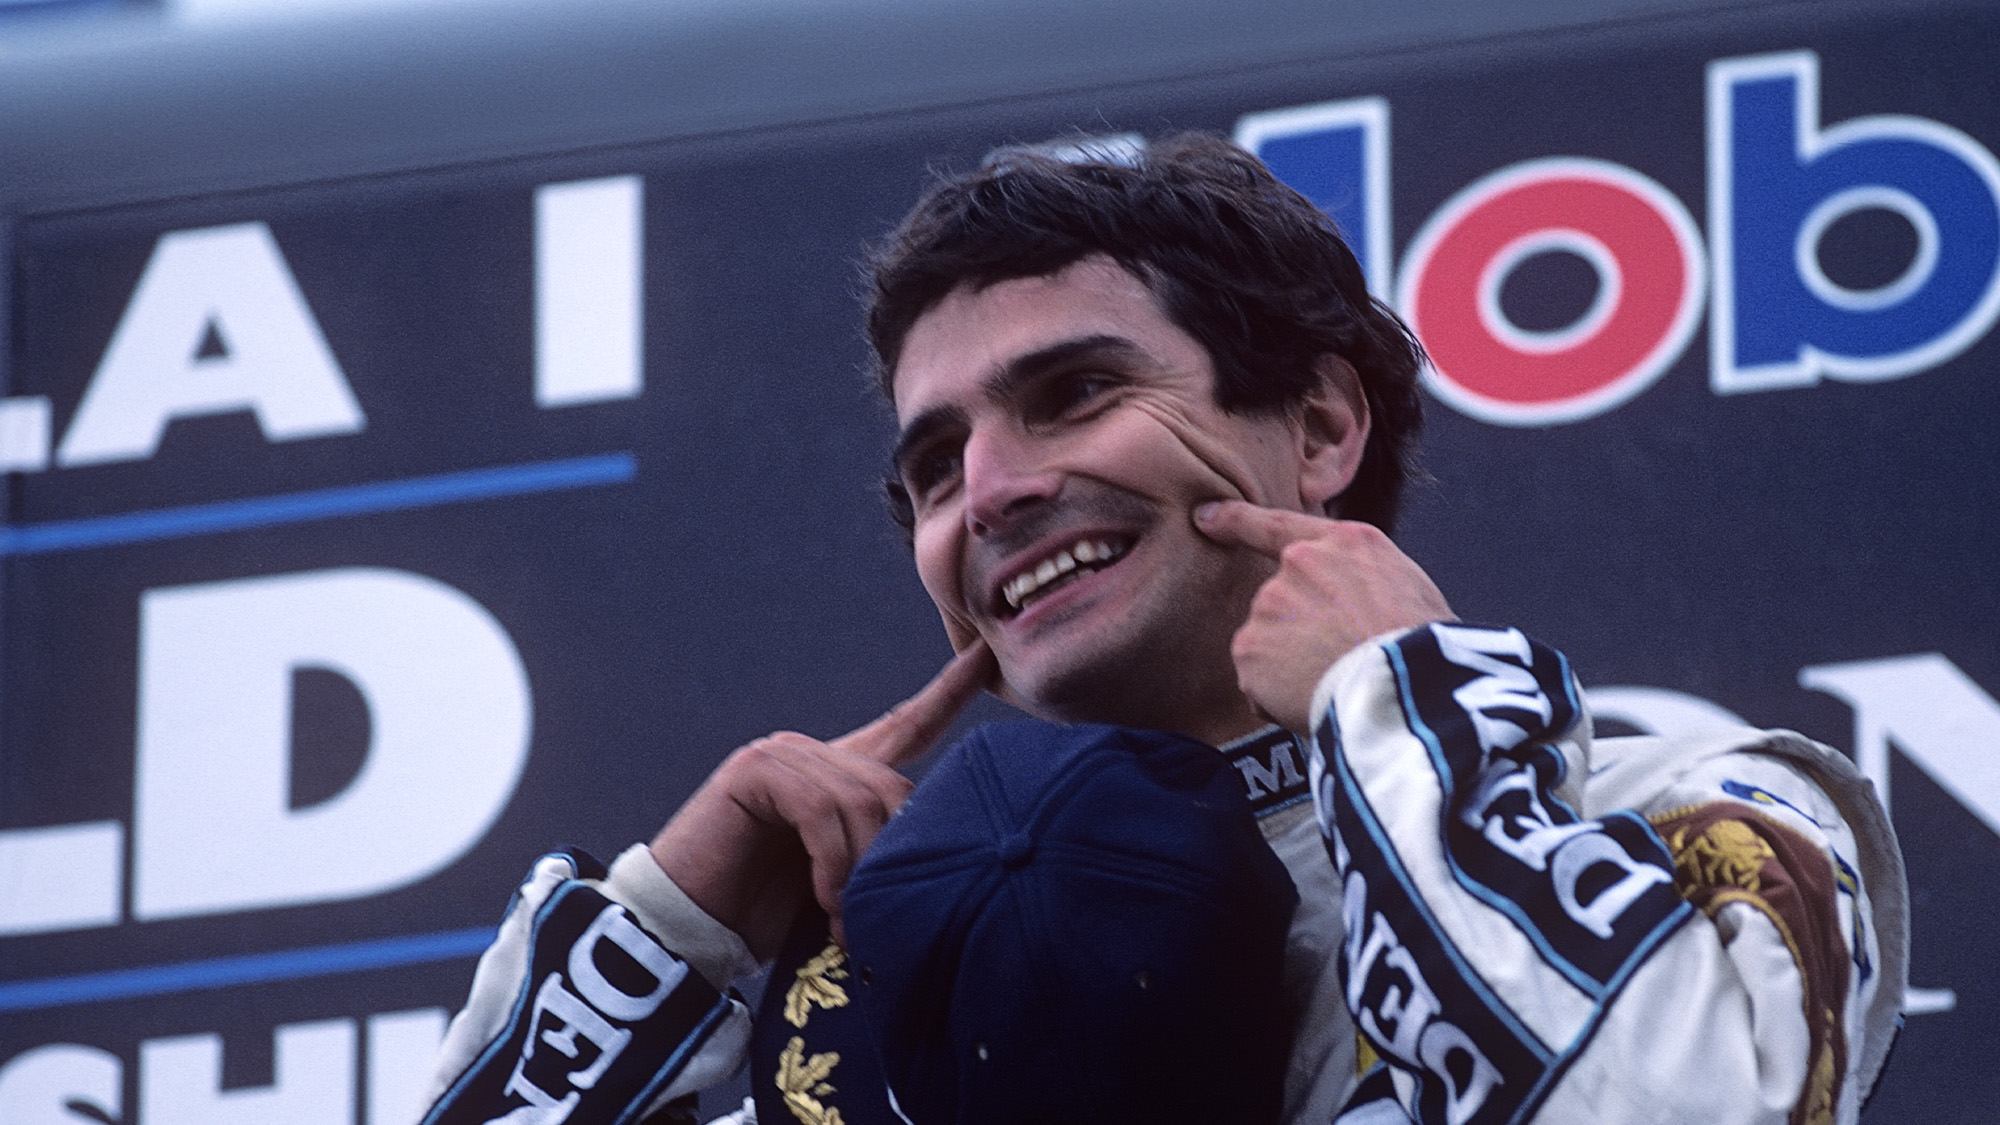 The abrasive joker — Nelson Piquet's F1 career